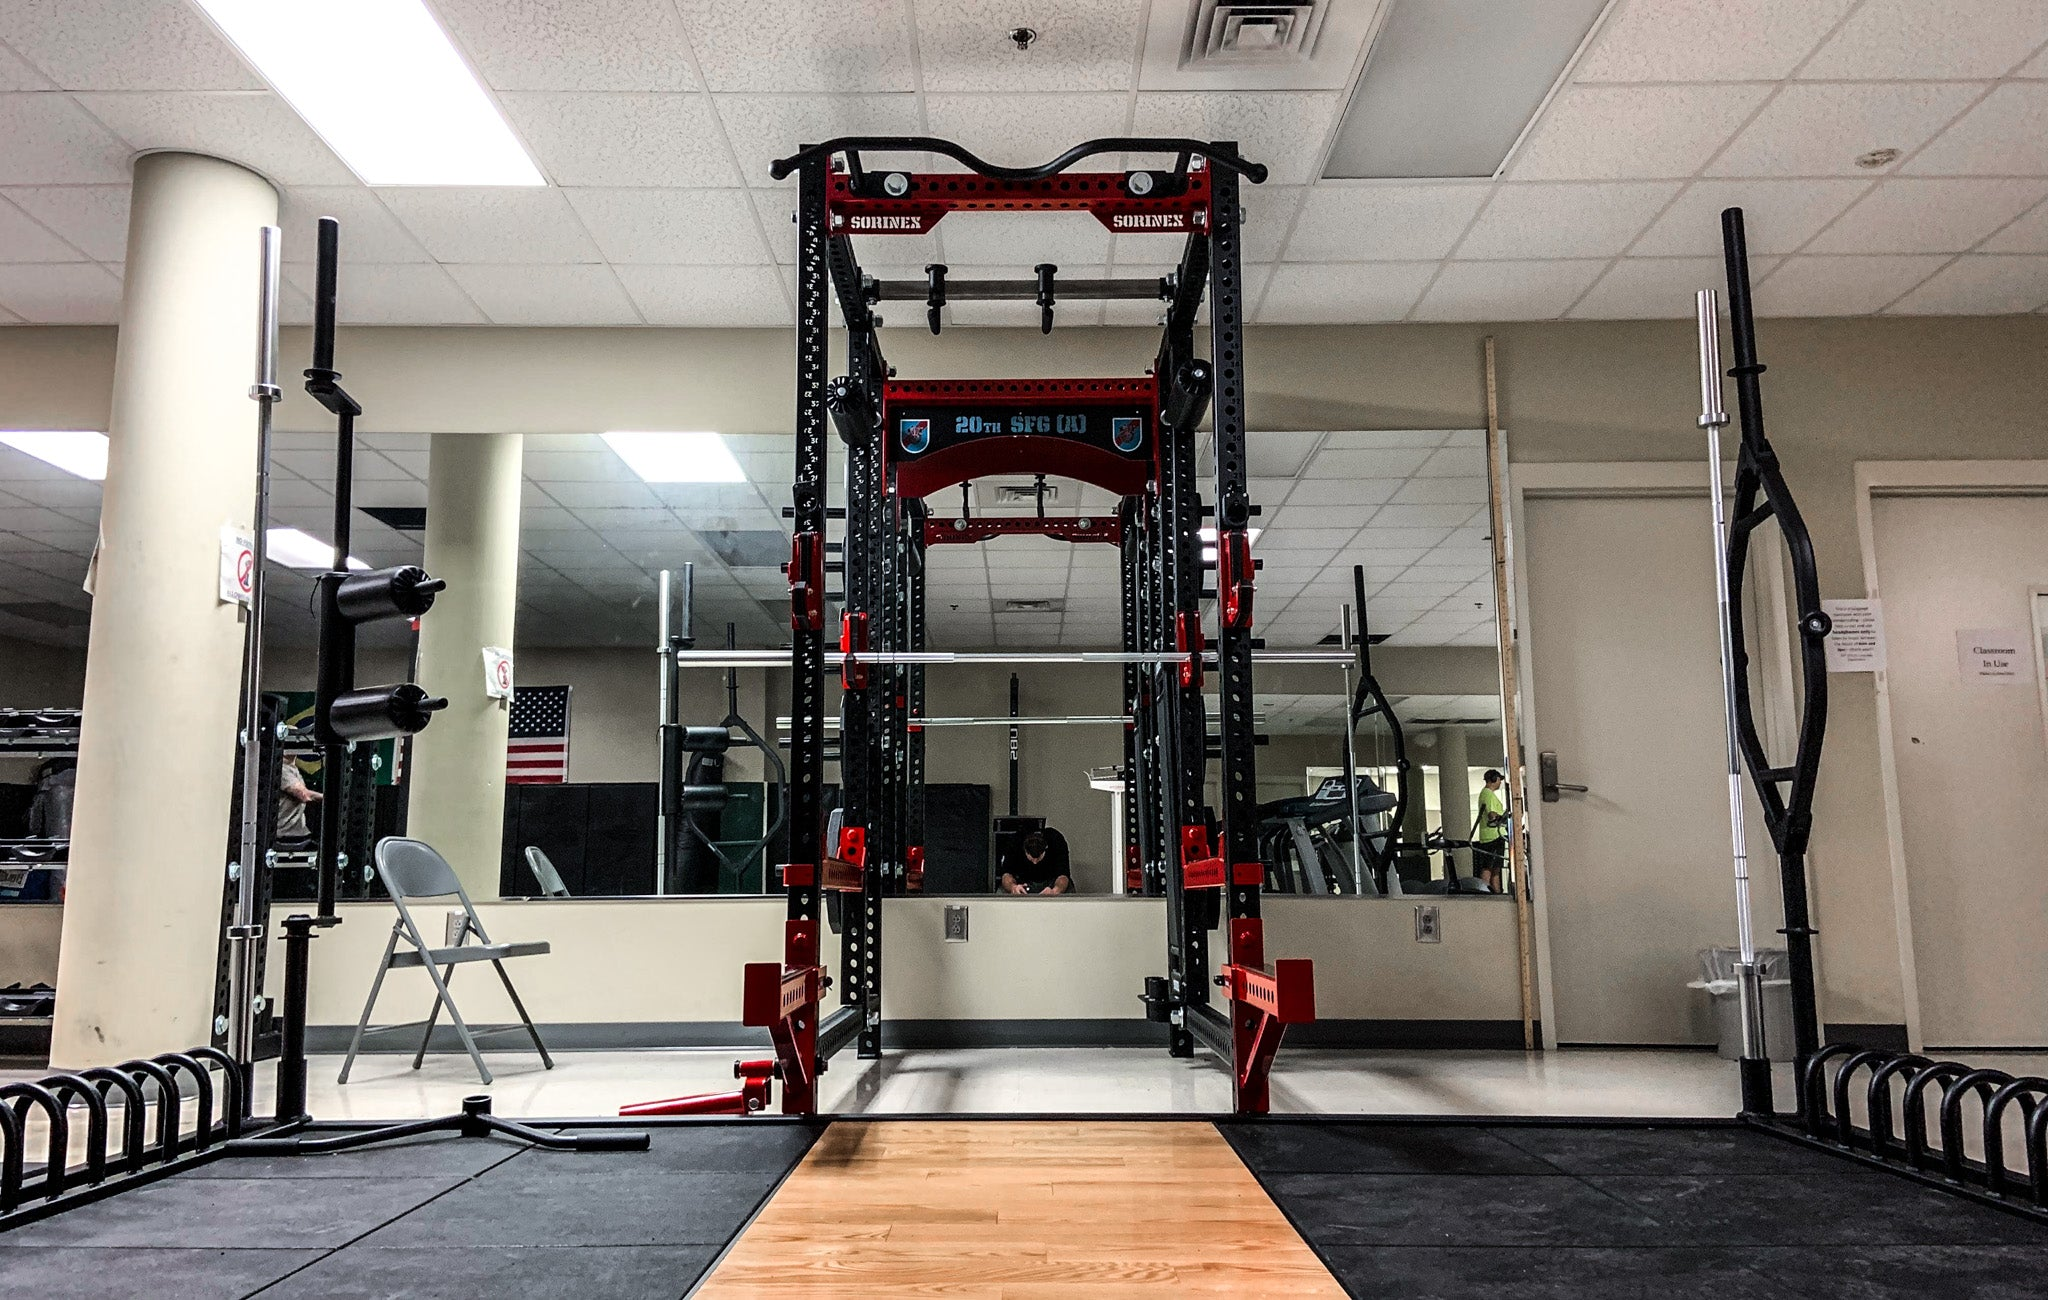 US military strength training facilities